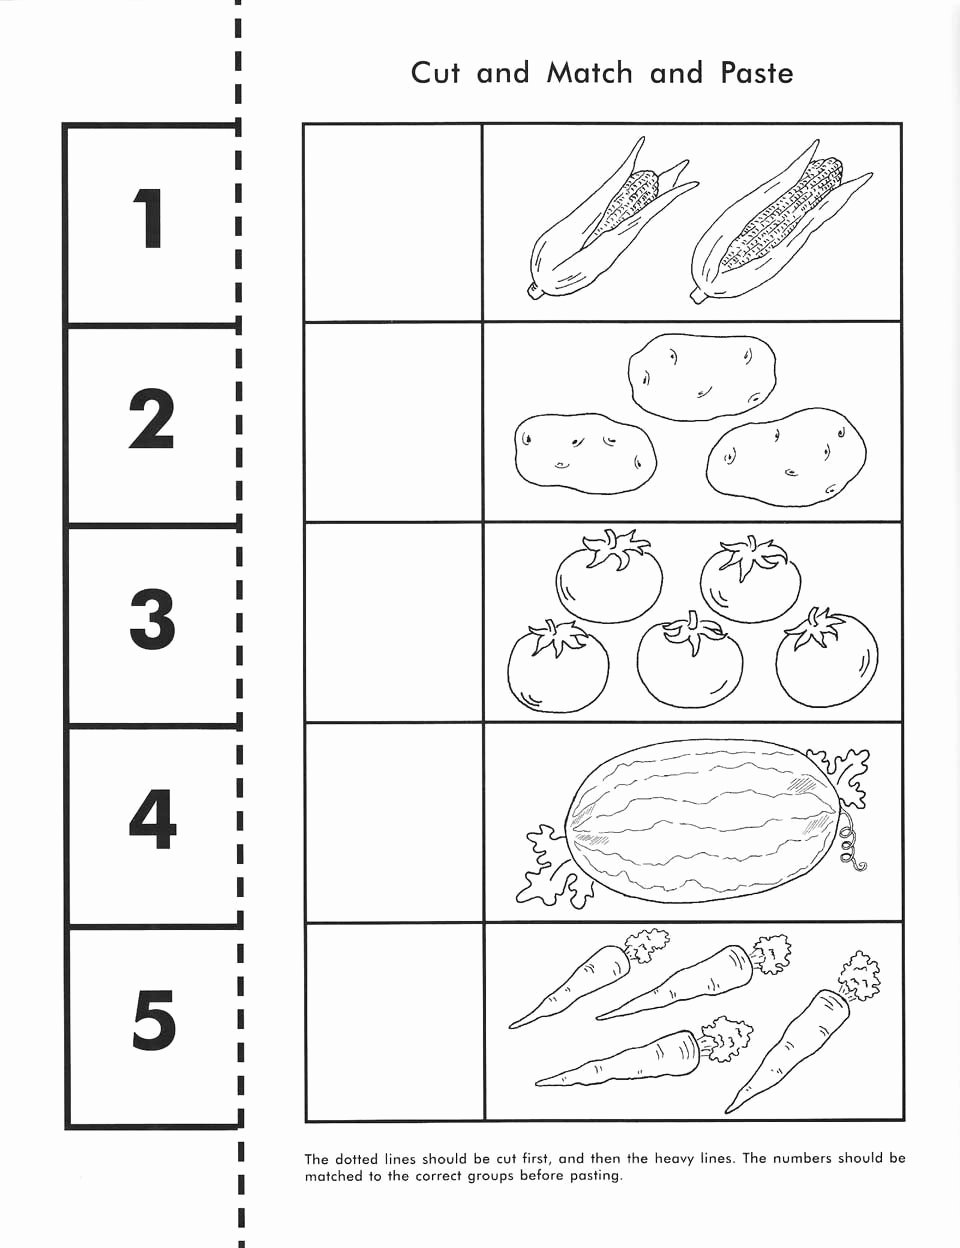 Pre K Printable Cutting Worksheets for Preschoolers Free Home Education Journal Rod & Staff Preschool Workbooks